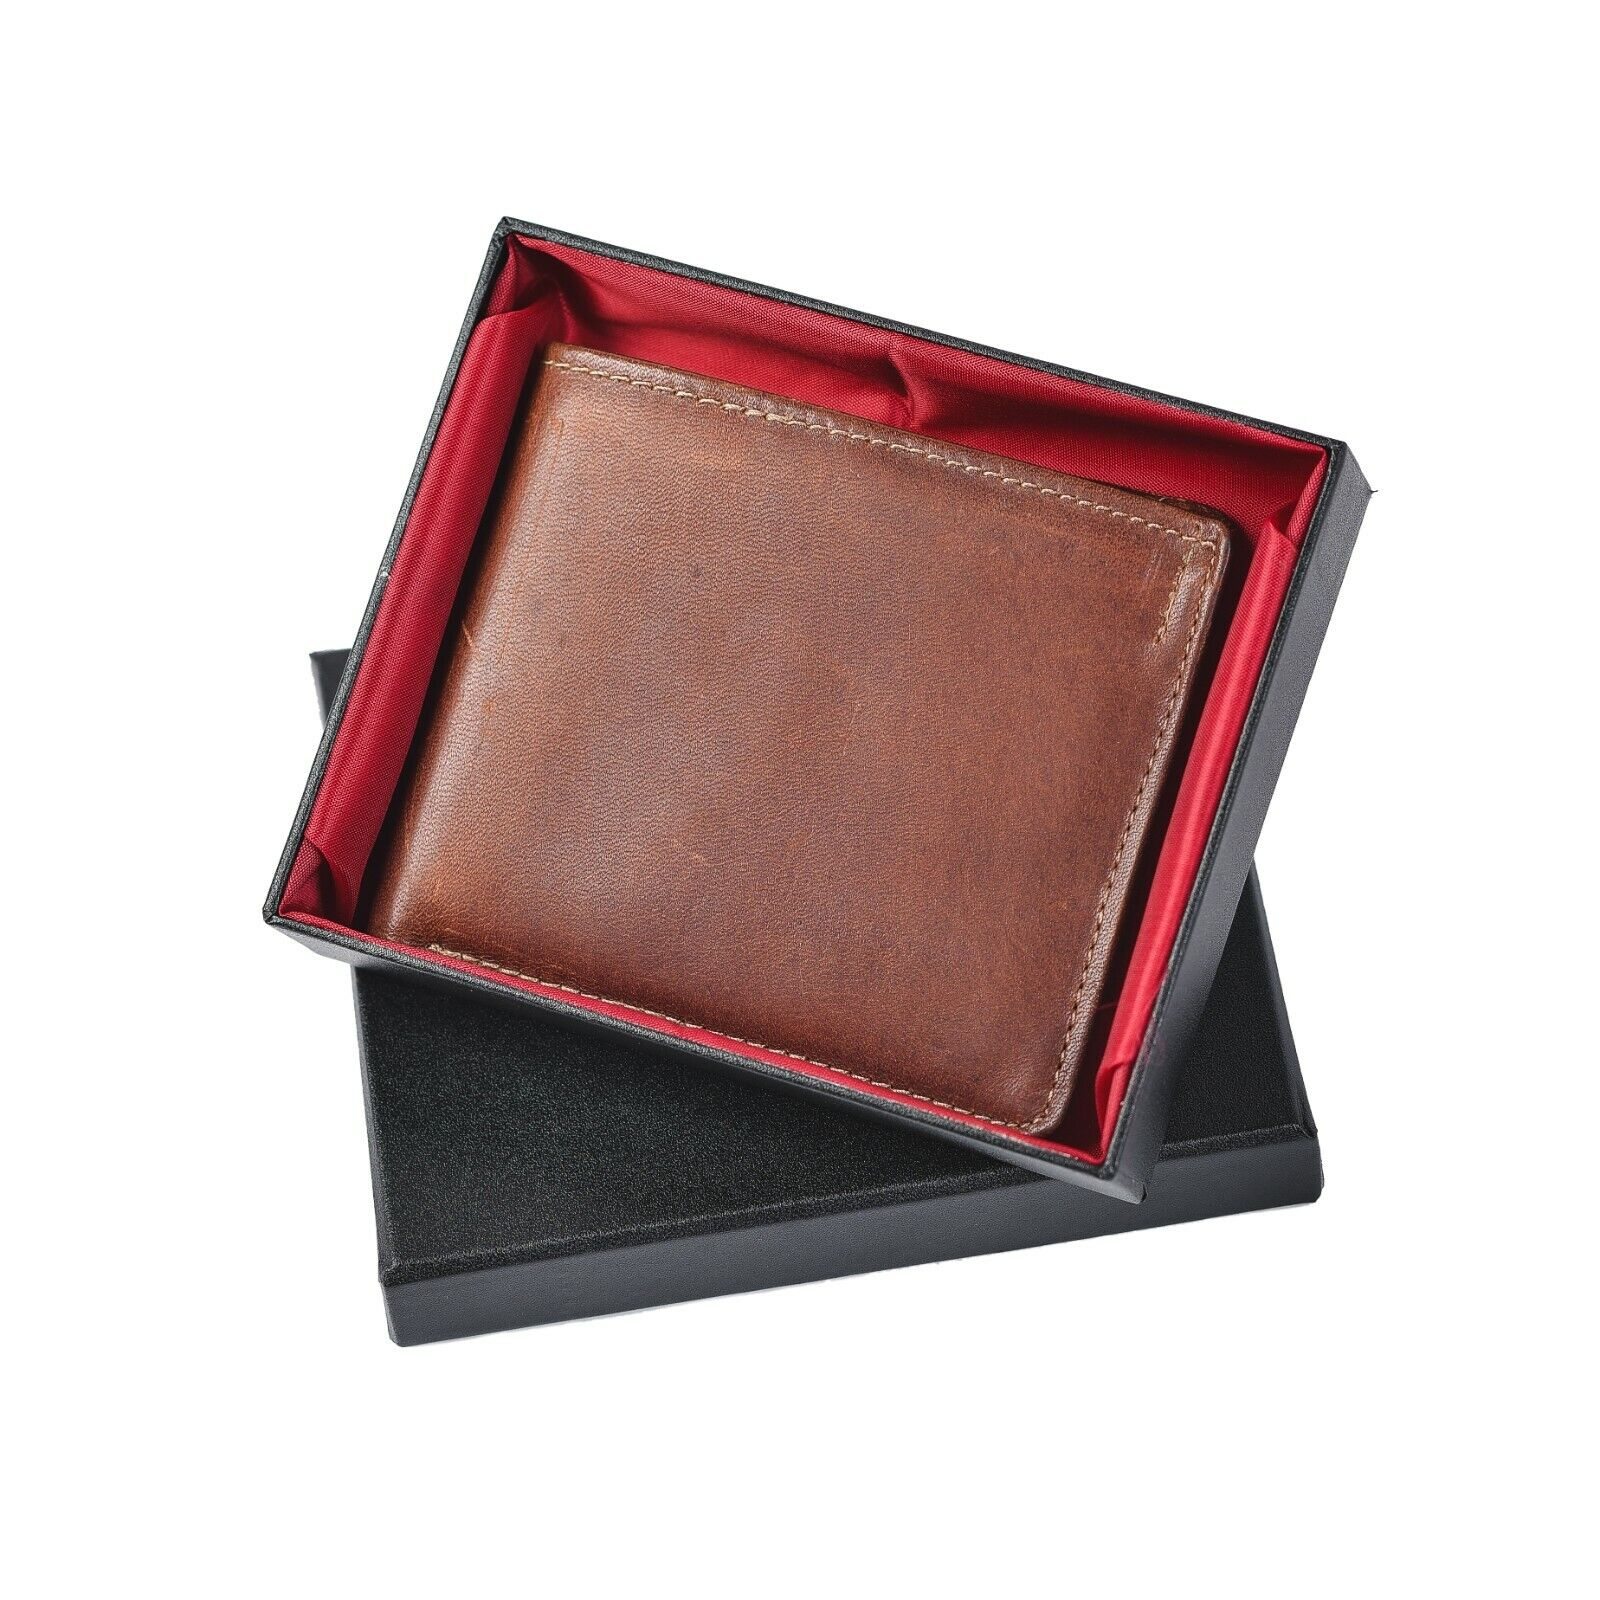 Real Leather Wallet/ Personalized, Minimalist, Cowhide, Men Card holder